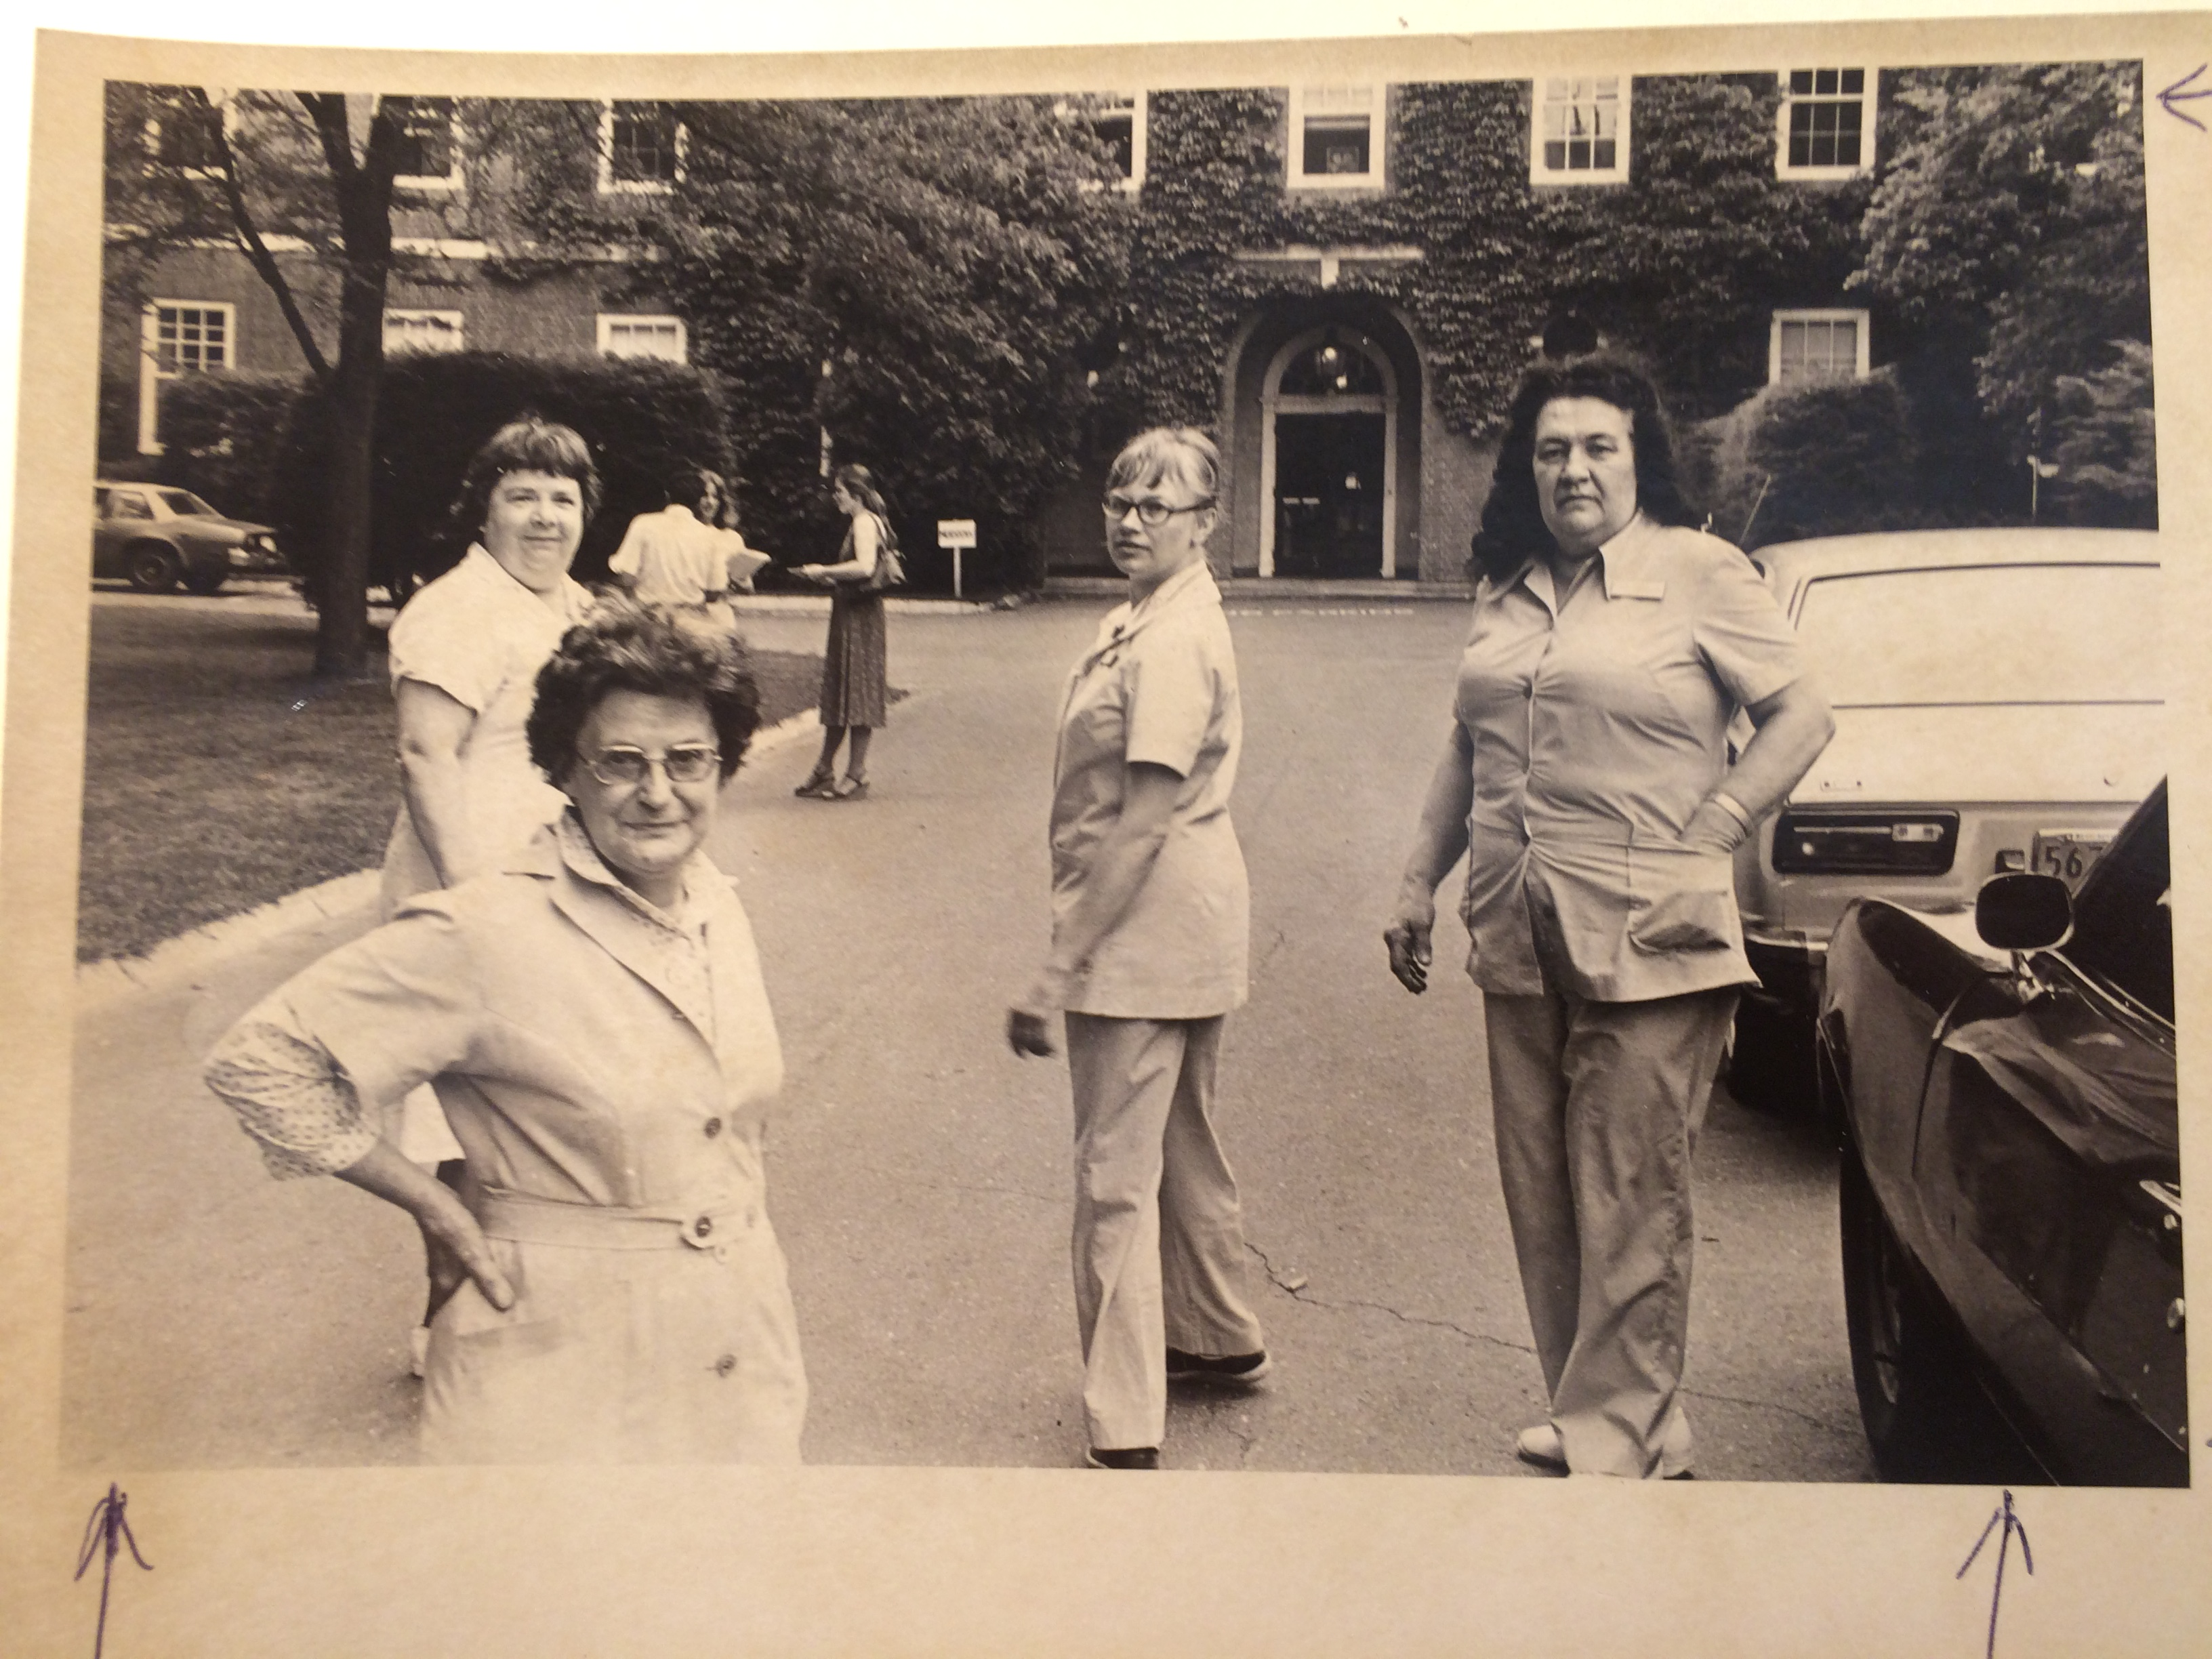 Photo of women in housekeeping uniform, going to work at Smith College.